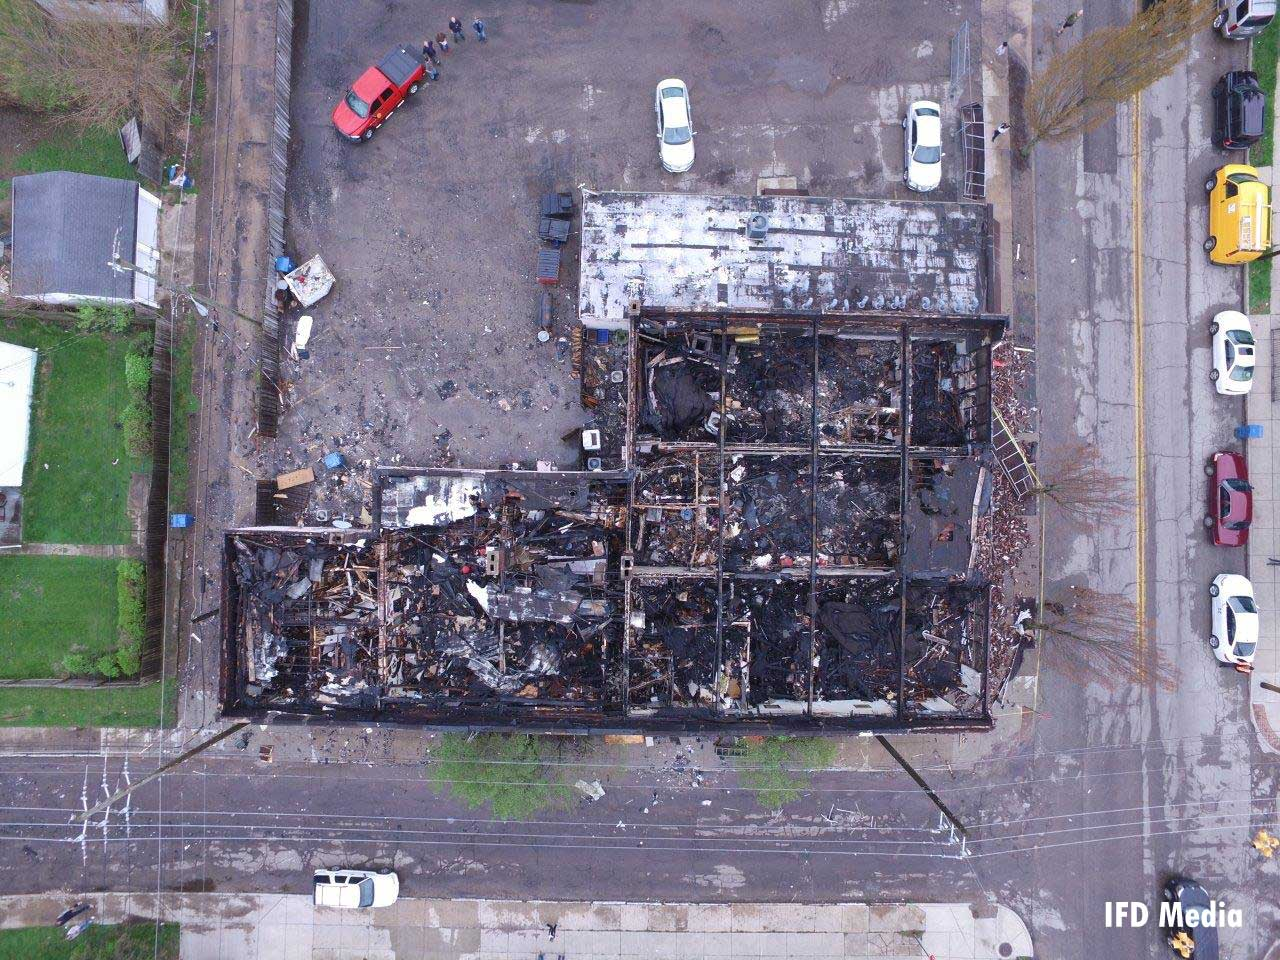 An overhead view of the fire-ravaged building in Indianapolis